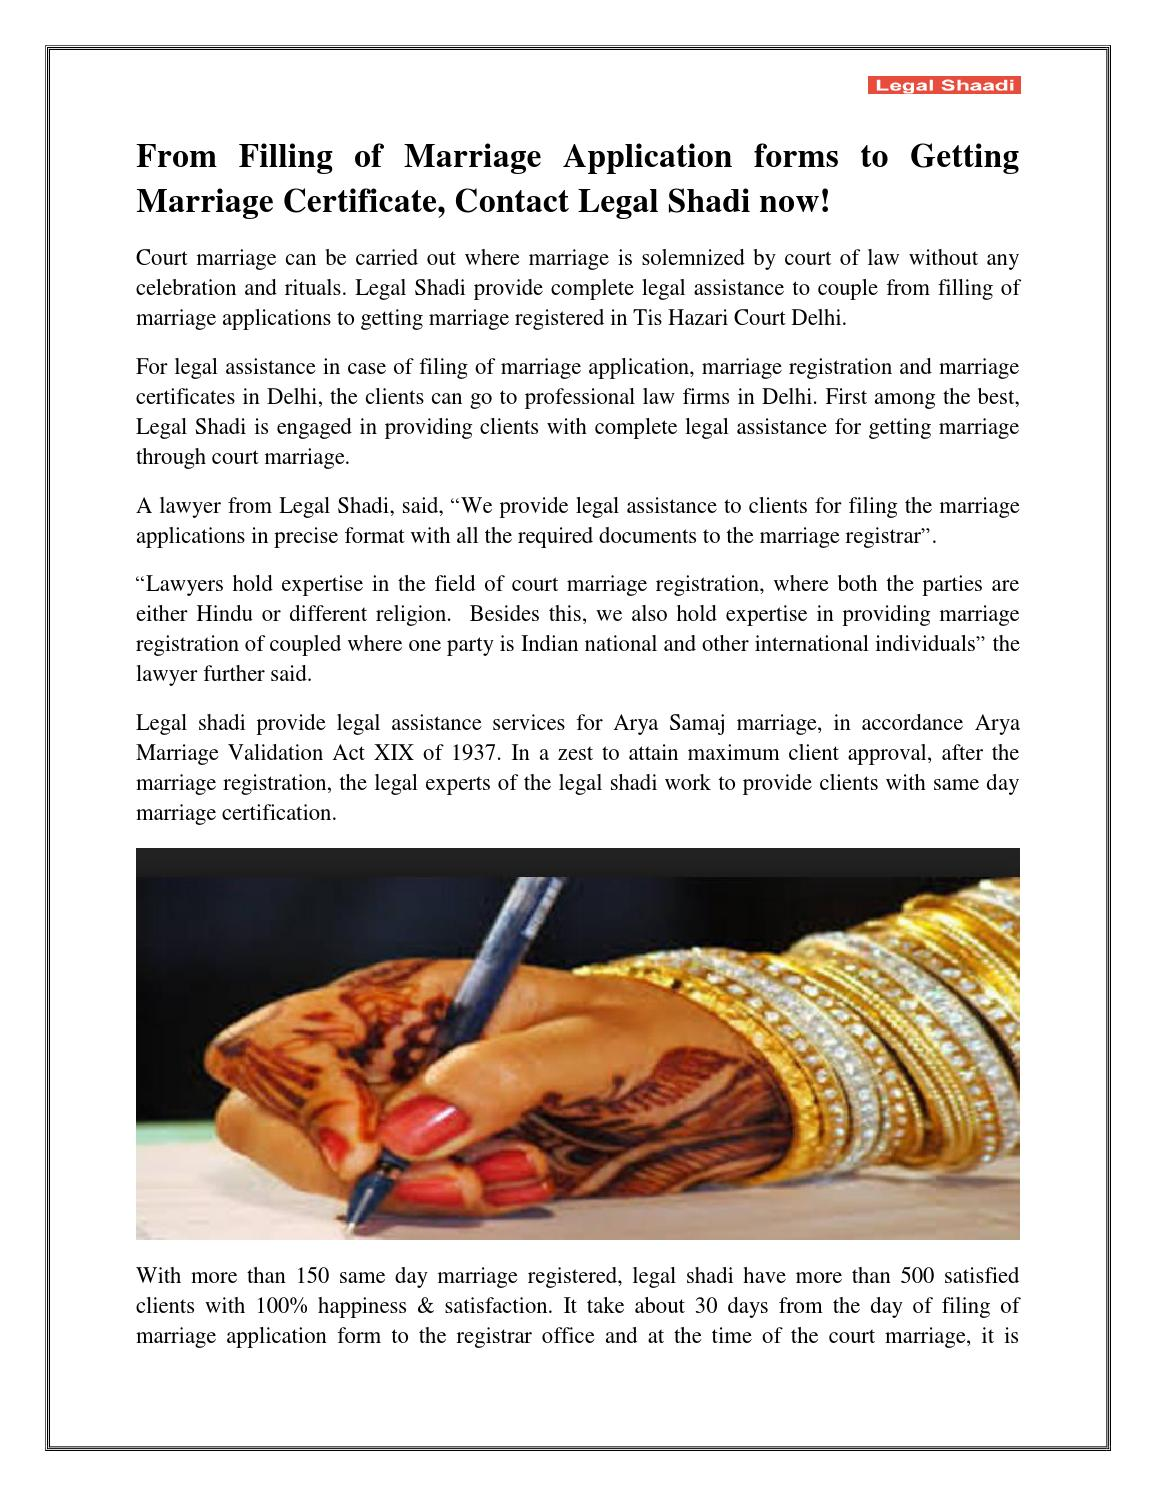 From filling of marriage application forms to getting marriage from filling of marriage application forms to getting marriage certificate contact legal shadi now by legalshaadi issuu xflitez Choice Image